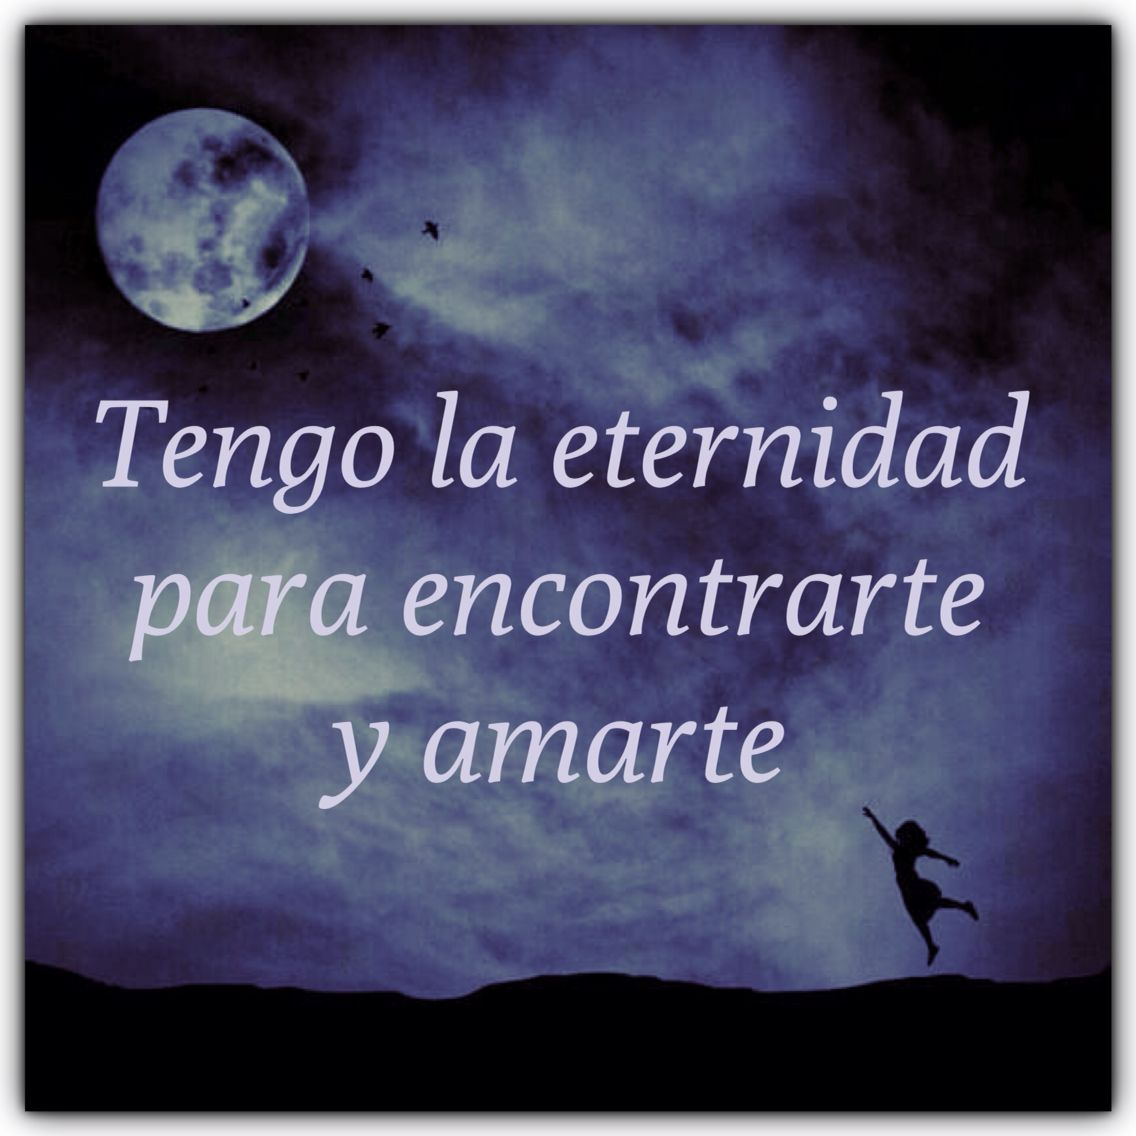 La eternidad! I have eternity to find you and love you.